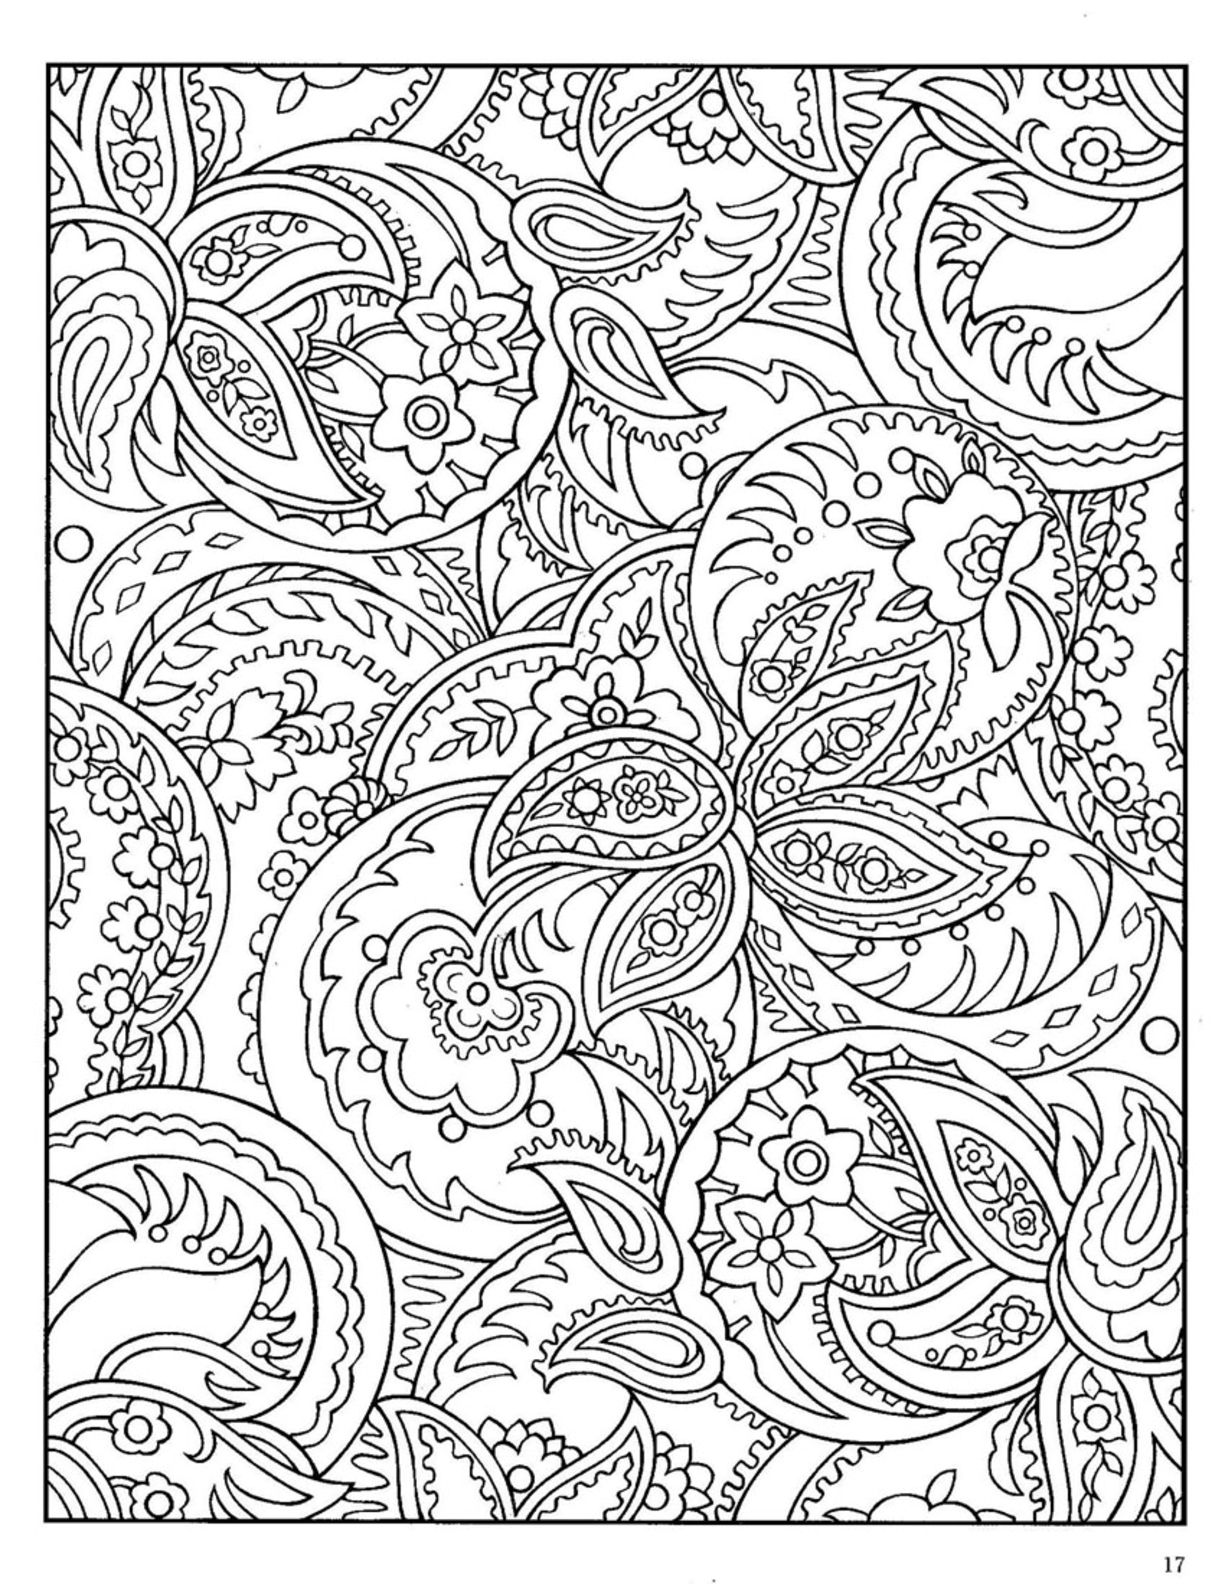 Paisley Designs Color it Yourself Art psychedelic words